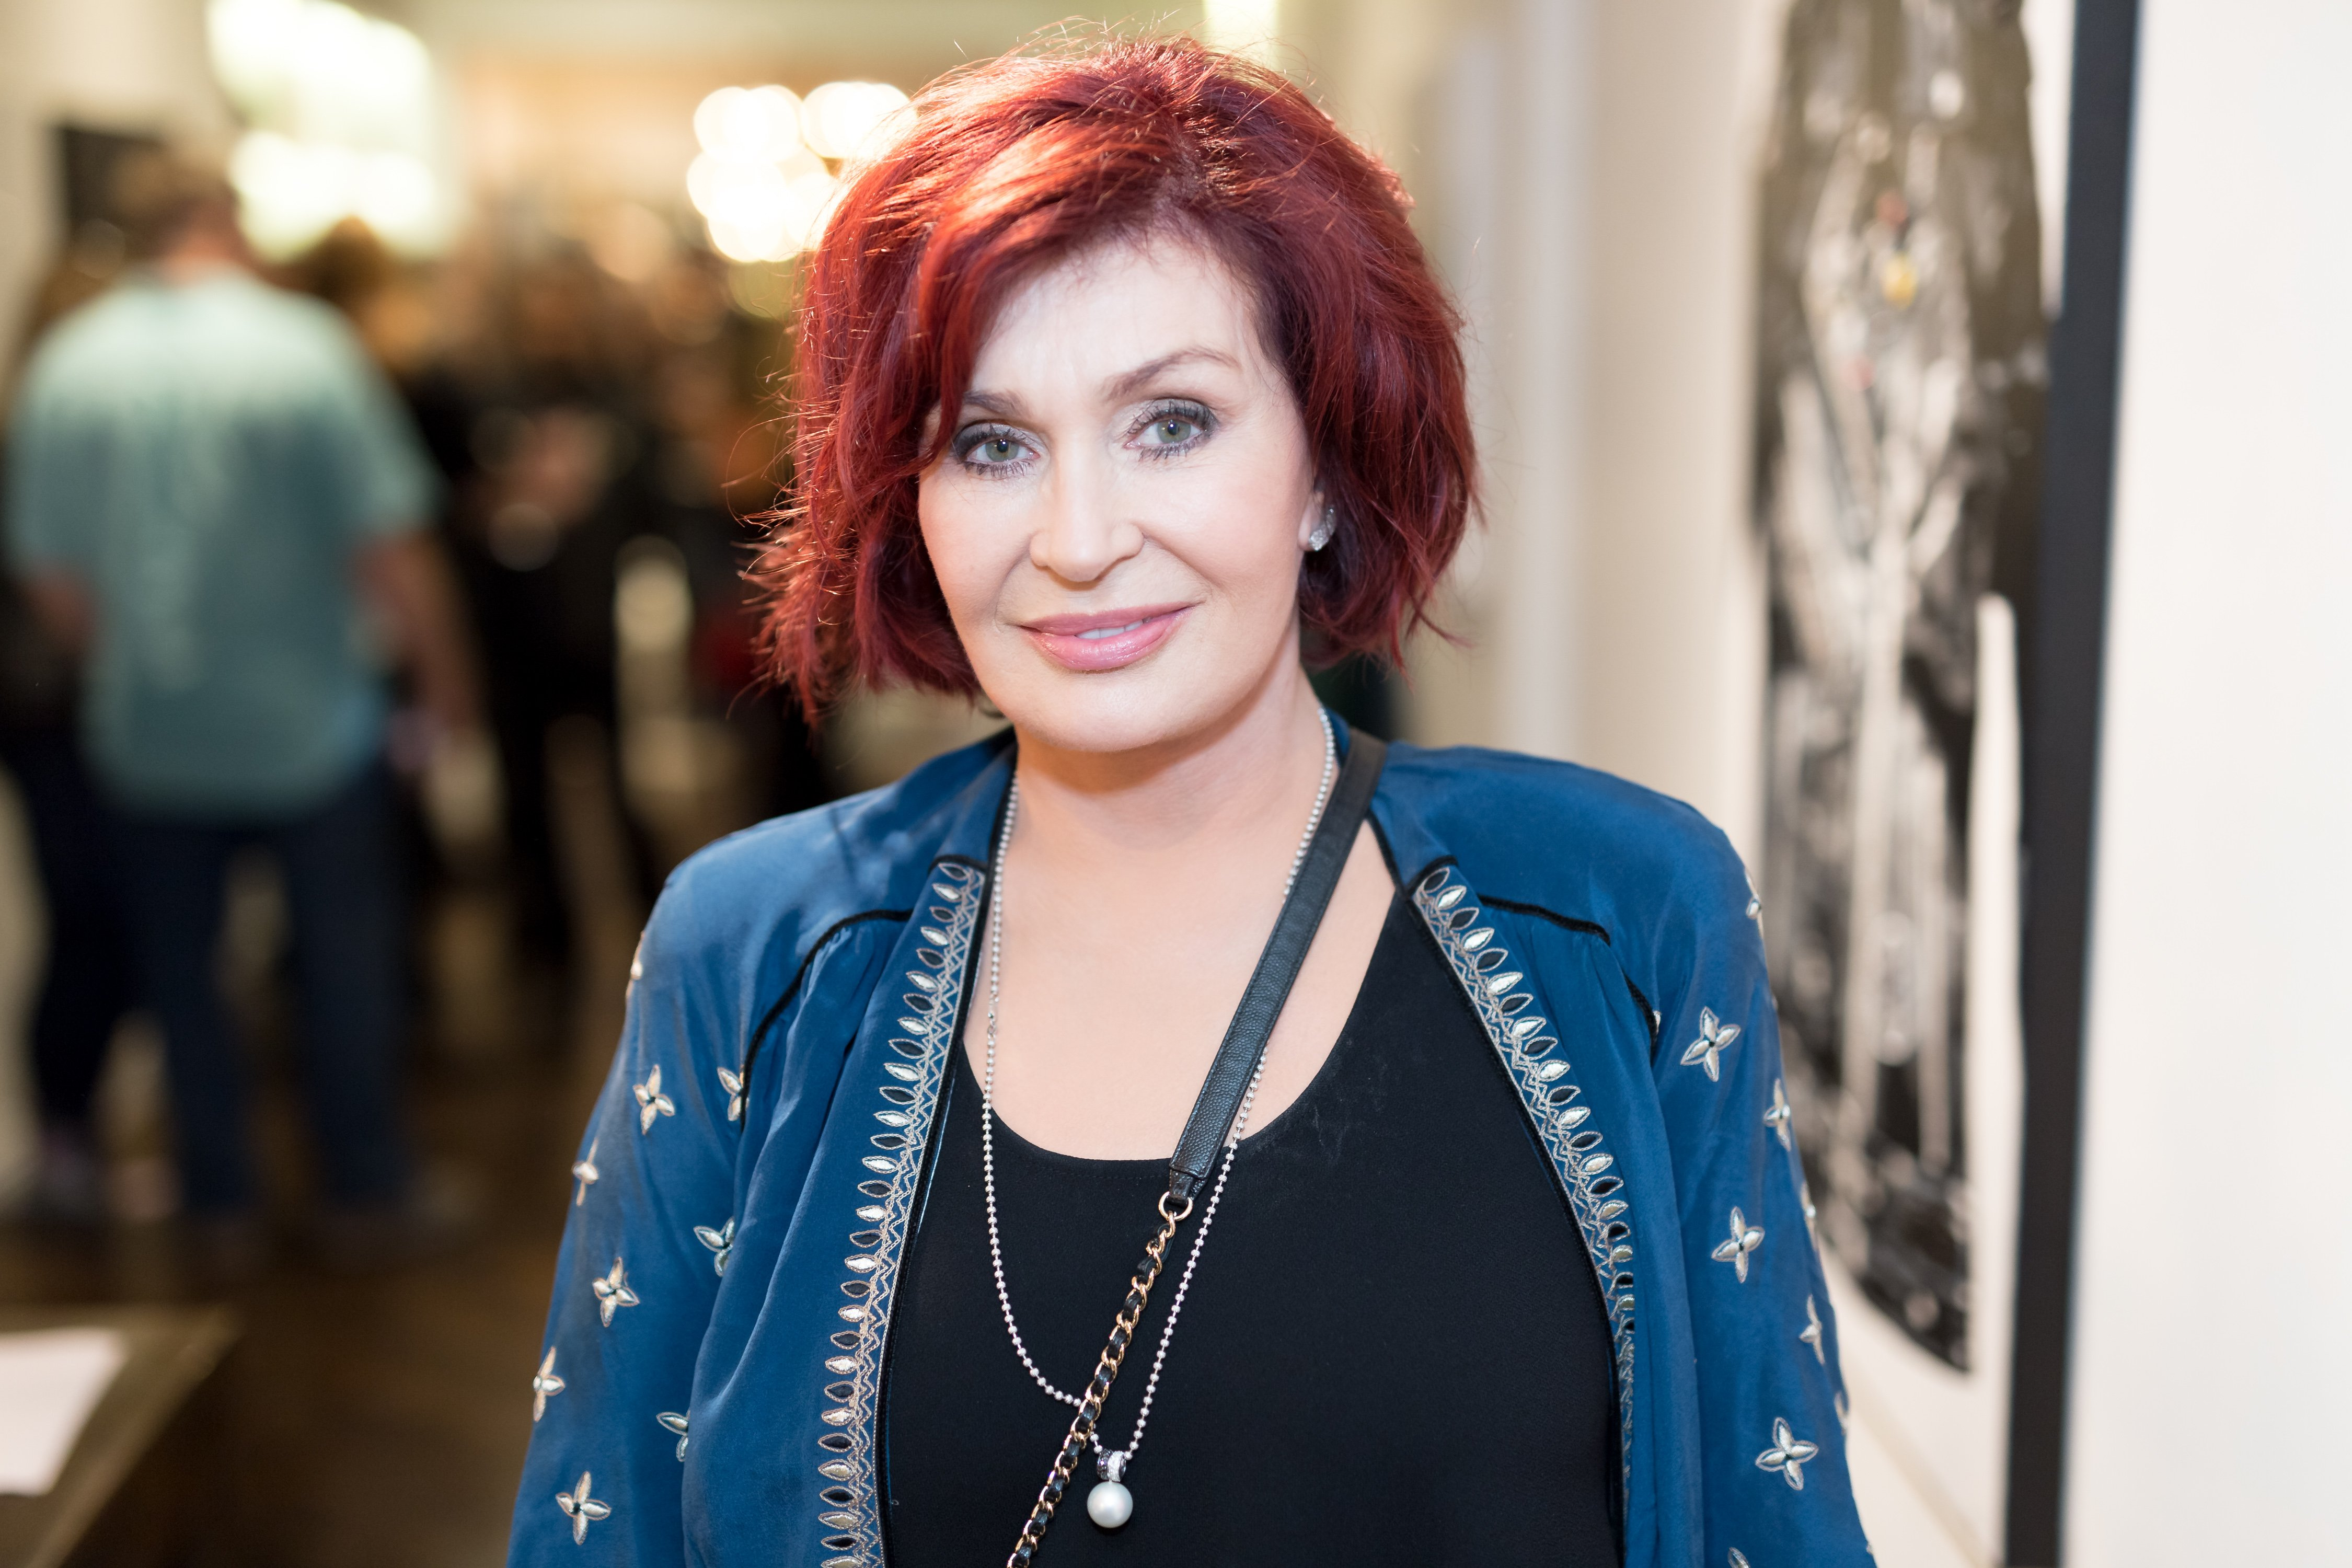 Sharon Osbourne attends the Billy Morrison - Aude Somnia Solo Exhibition on September 28, 2017. | Photo: GettyImages